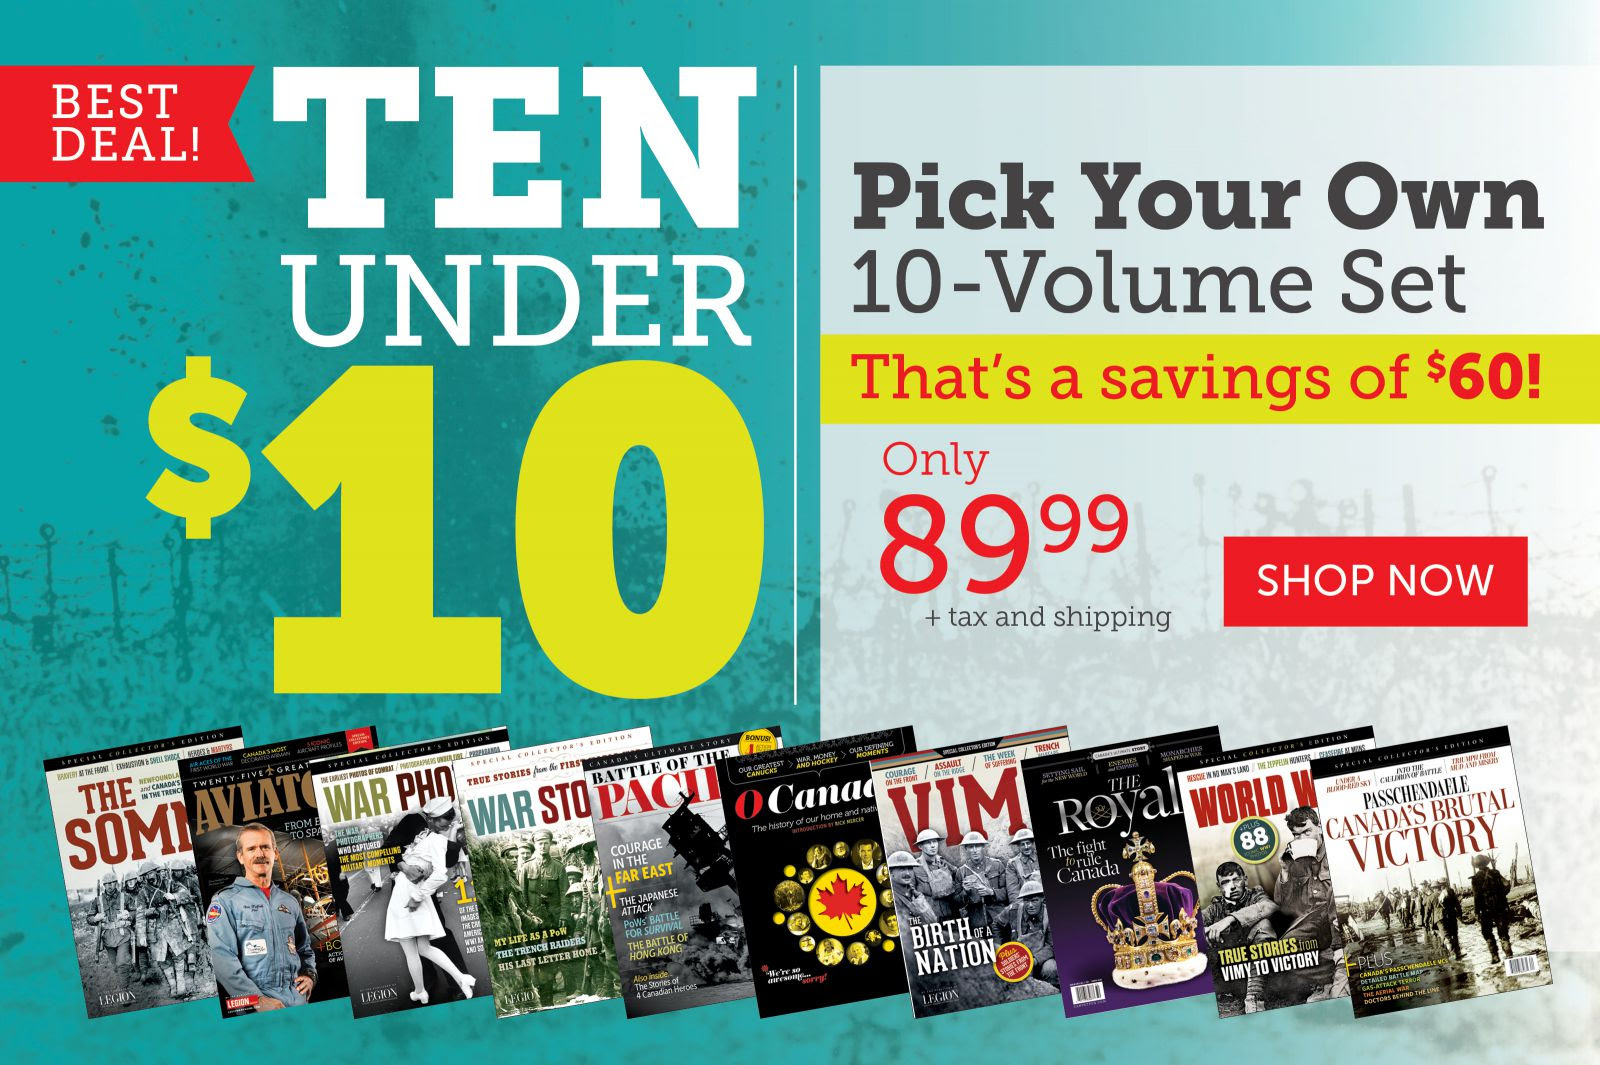 Best Deal! Ten Under $10!